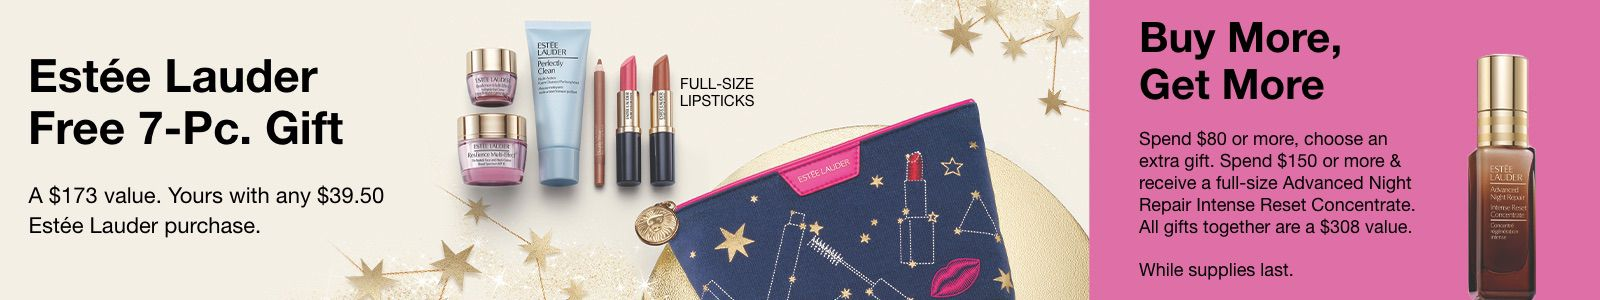 Estee Launder Free 7- Pc, Gift, Shop Now, Full-Size Lipsticks, Buy More, Get More